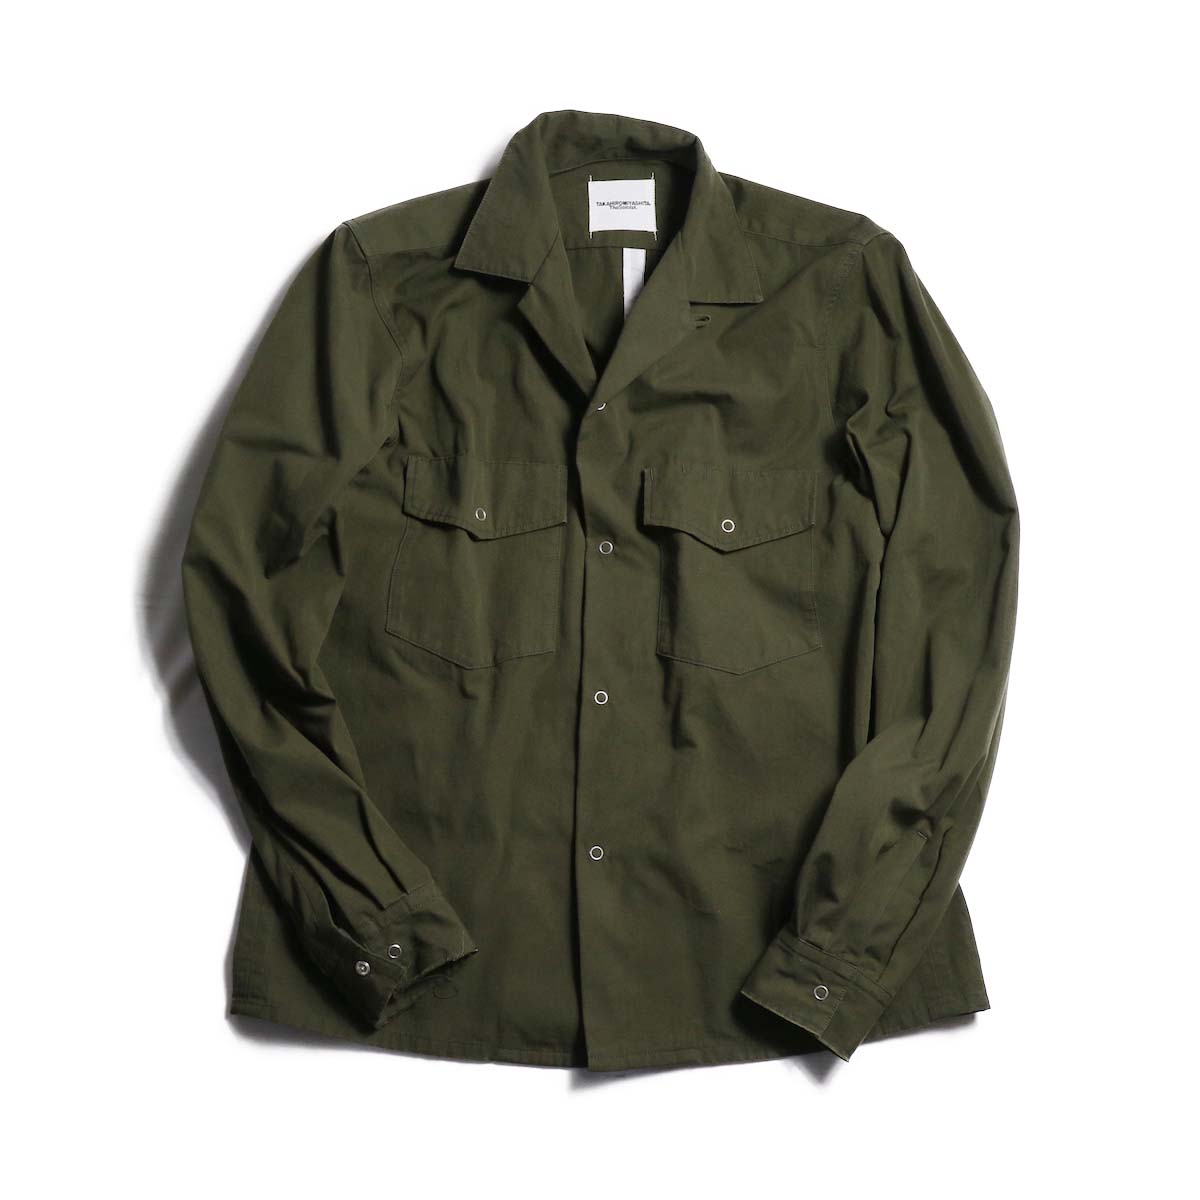 TheSoloist / sws.0010AW18 fatigue shirt.